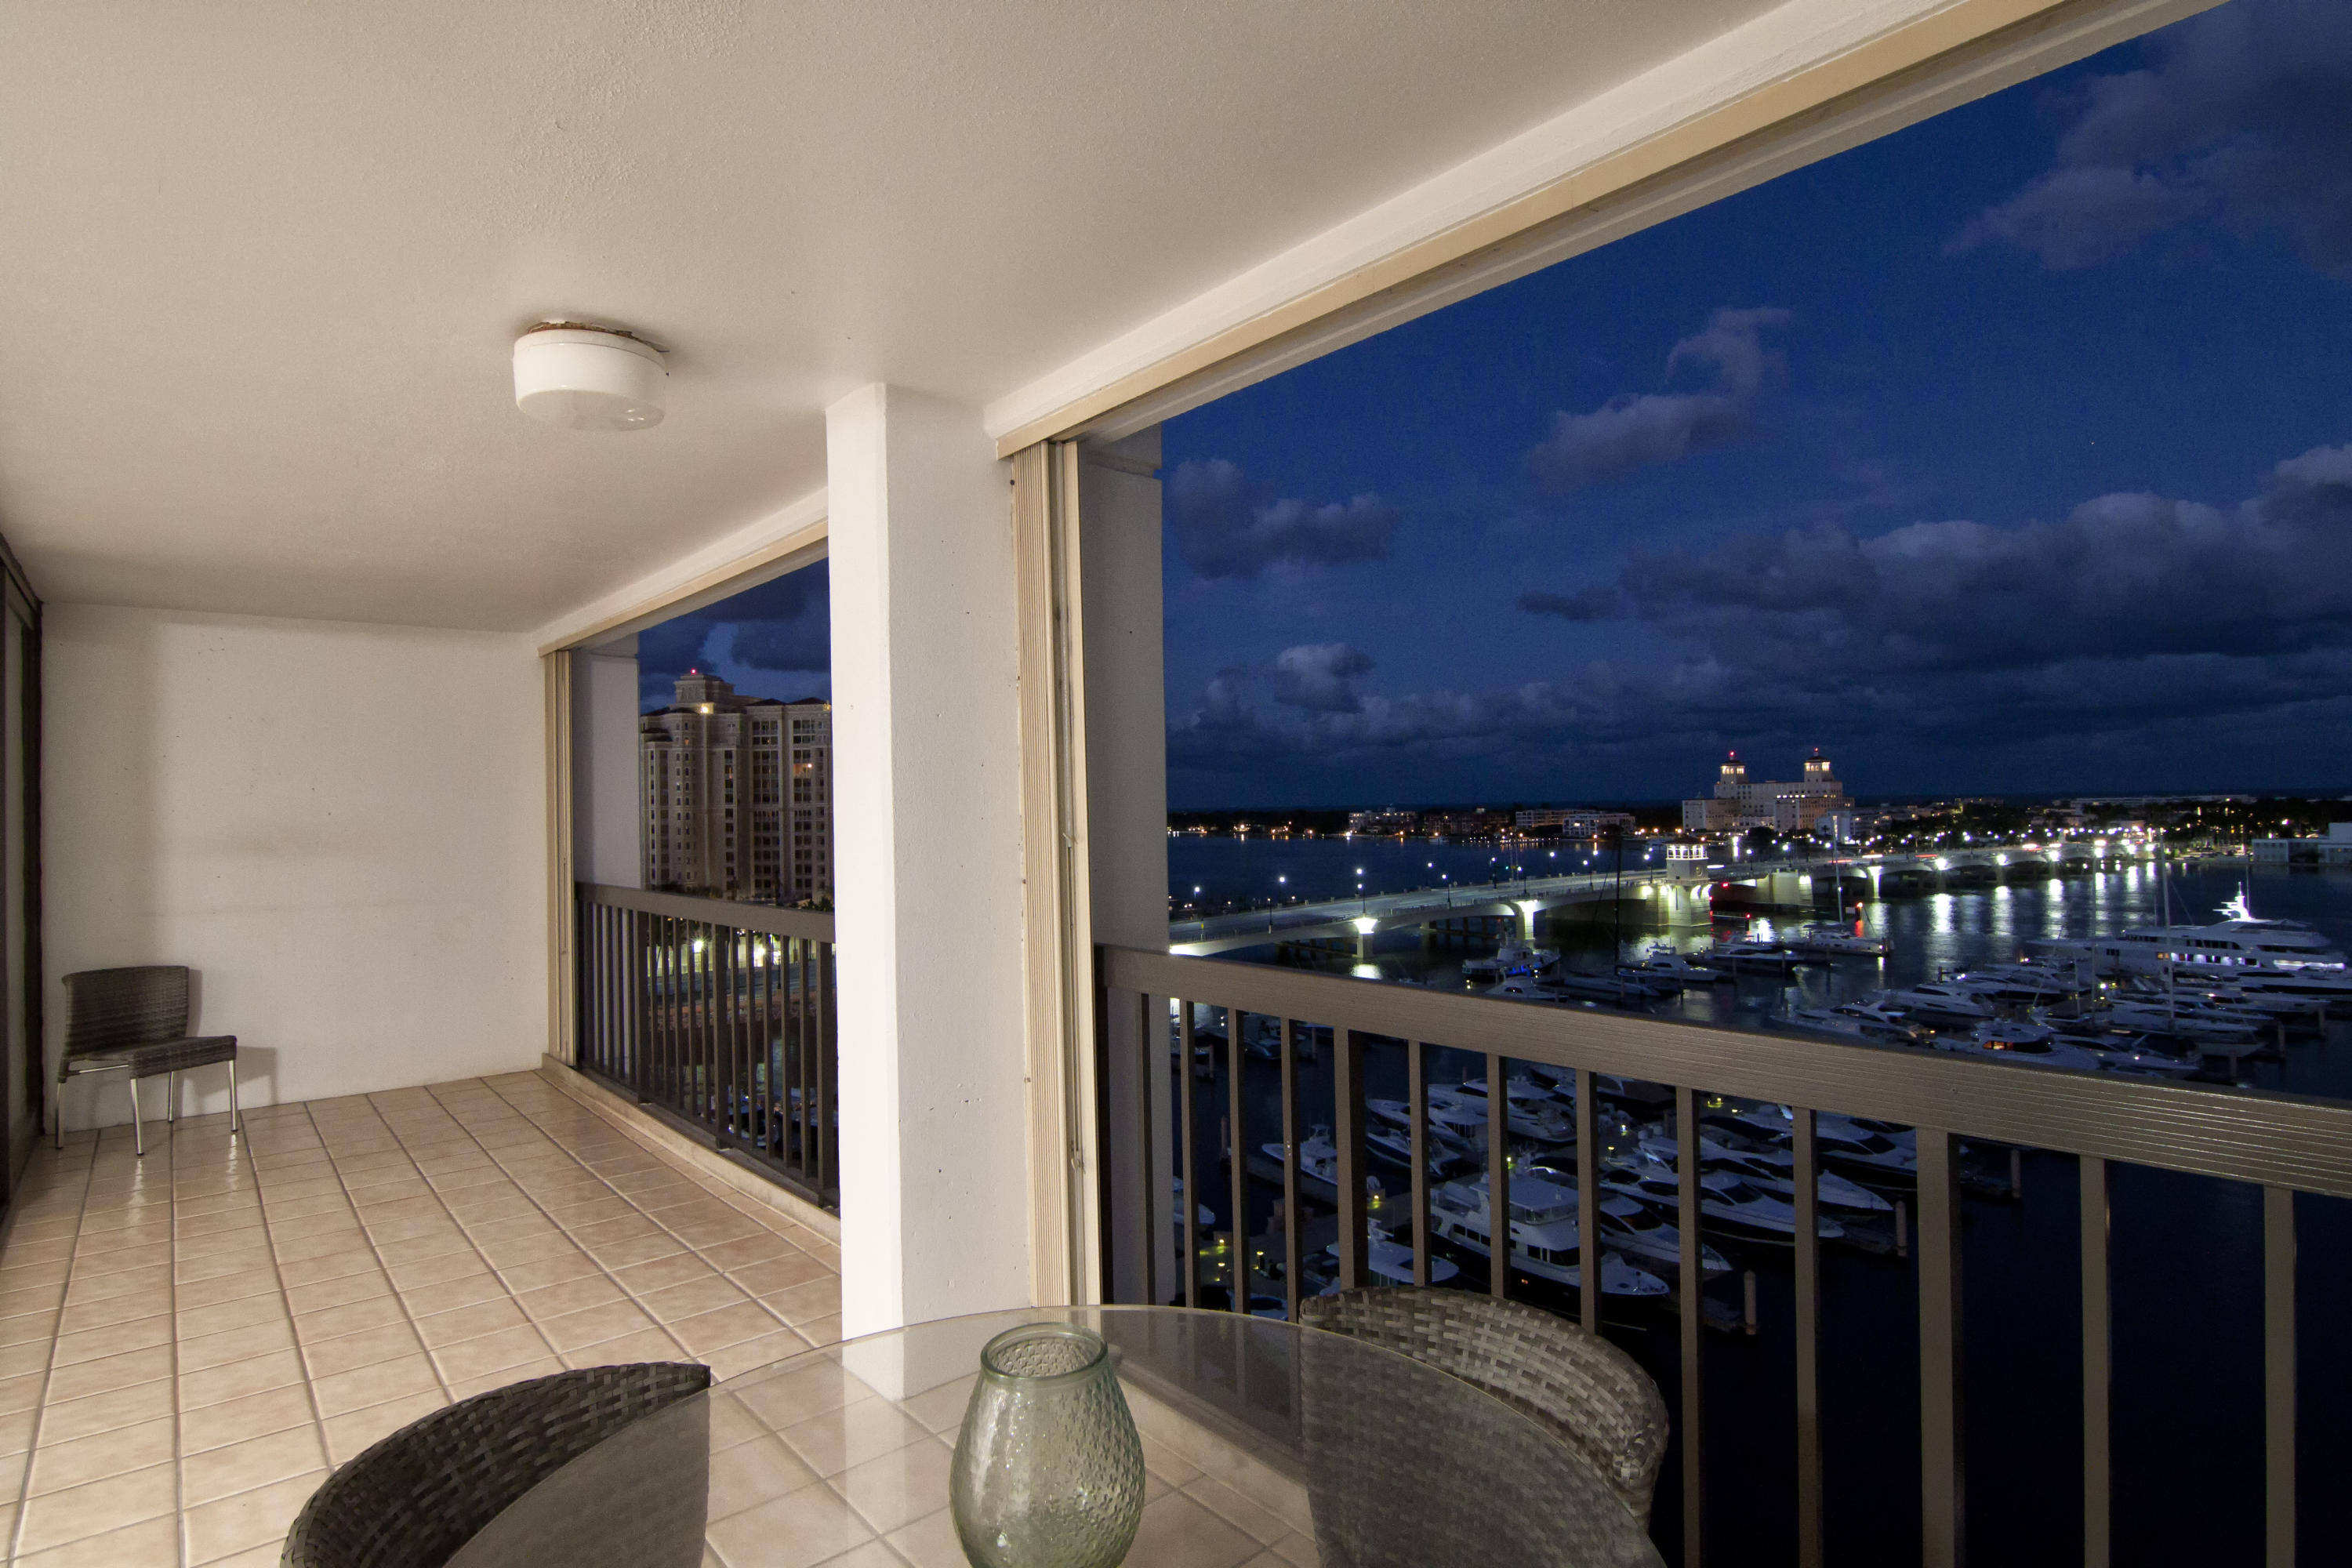 WATERVIEW TOWERS WEST PALM BEACH FLORIDA